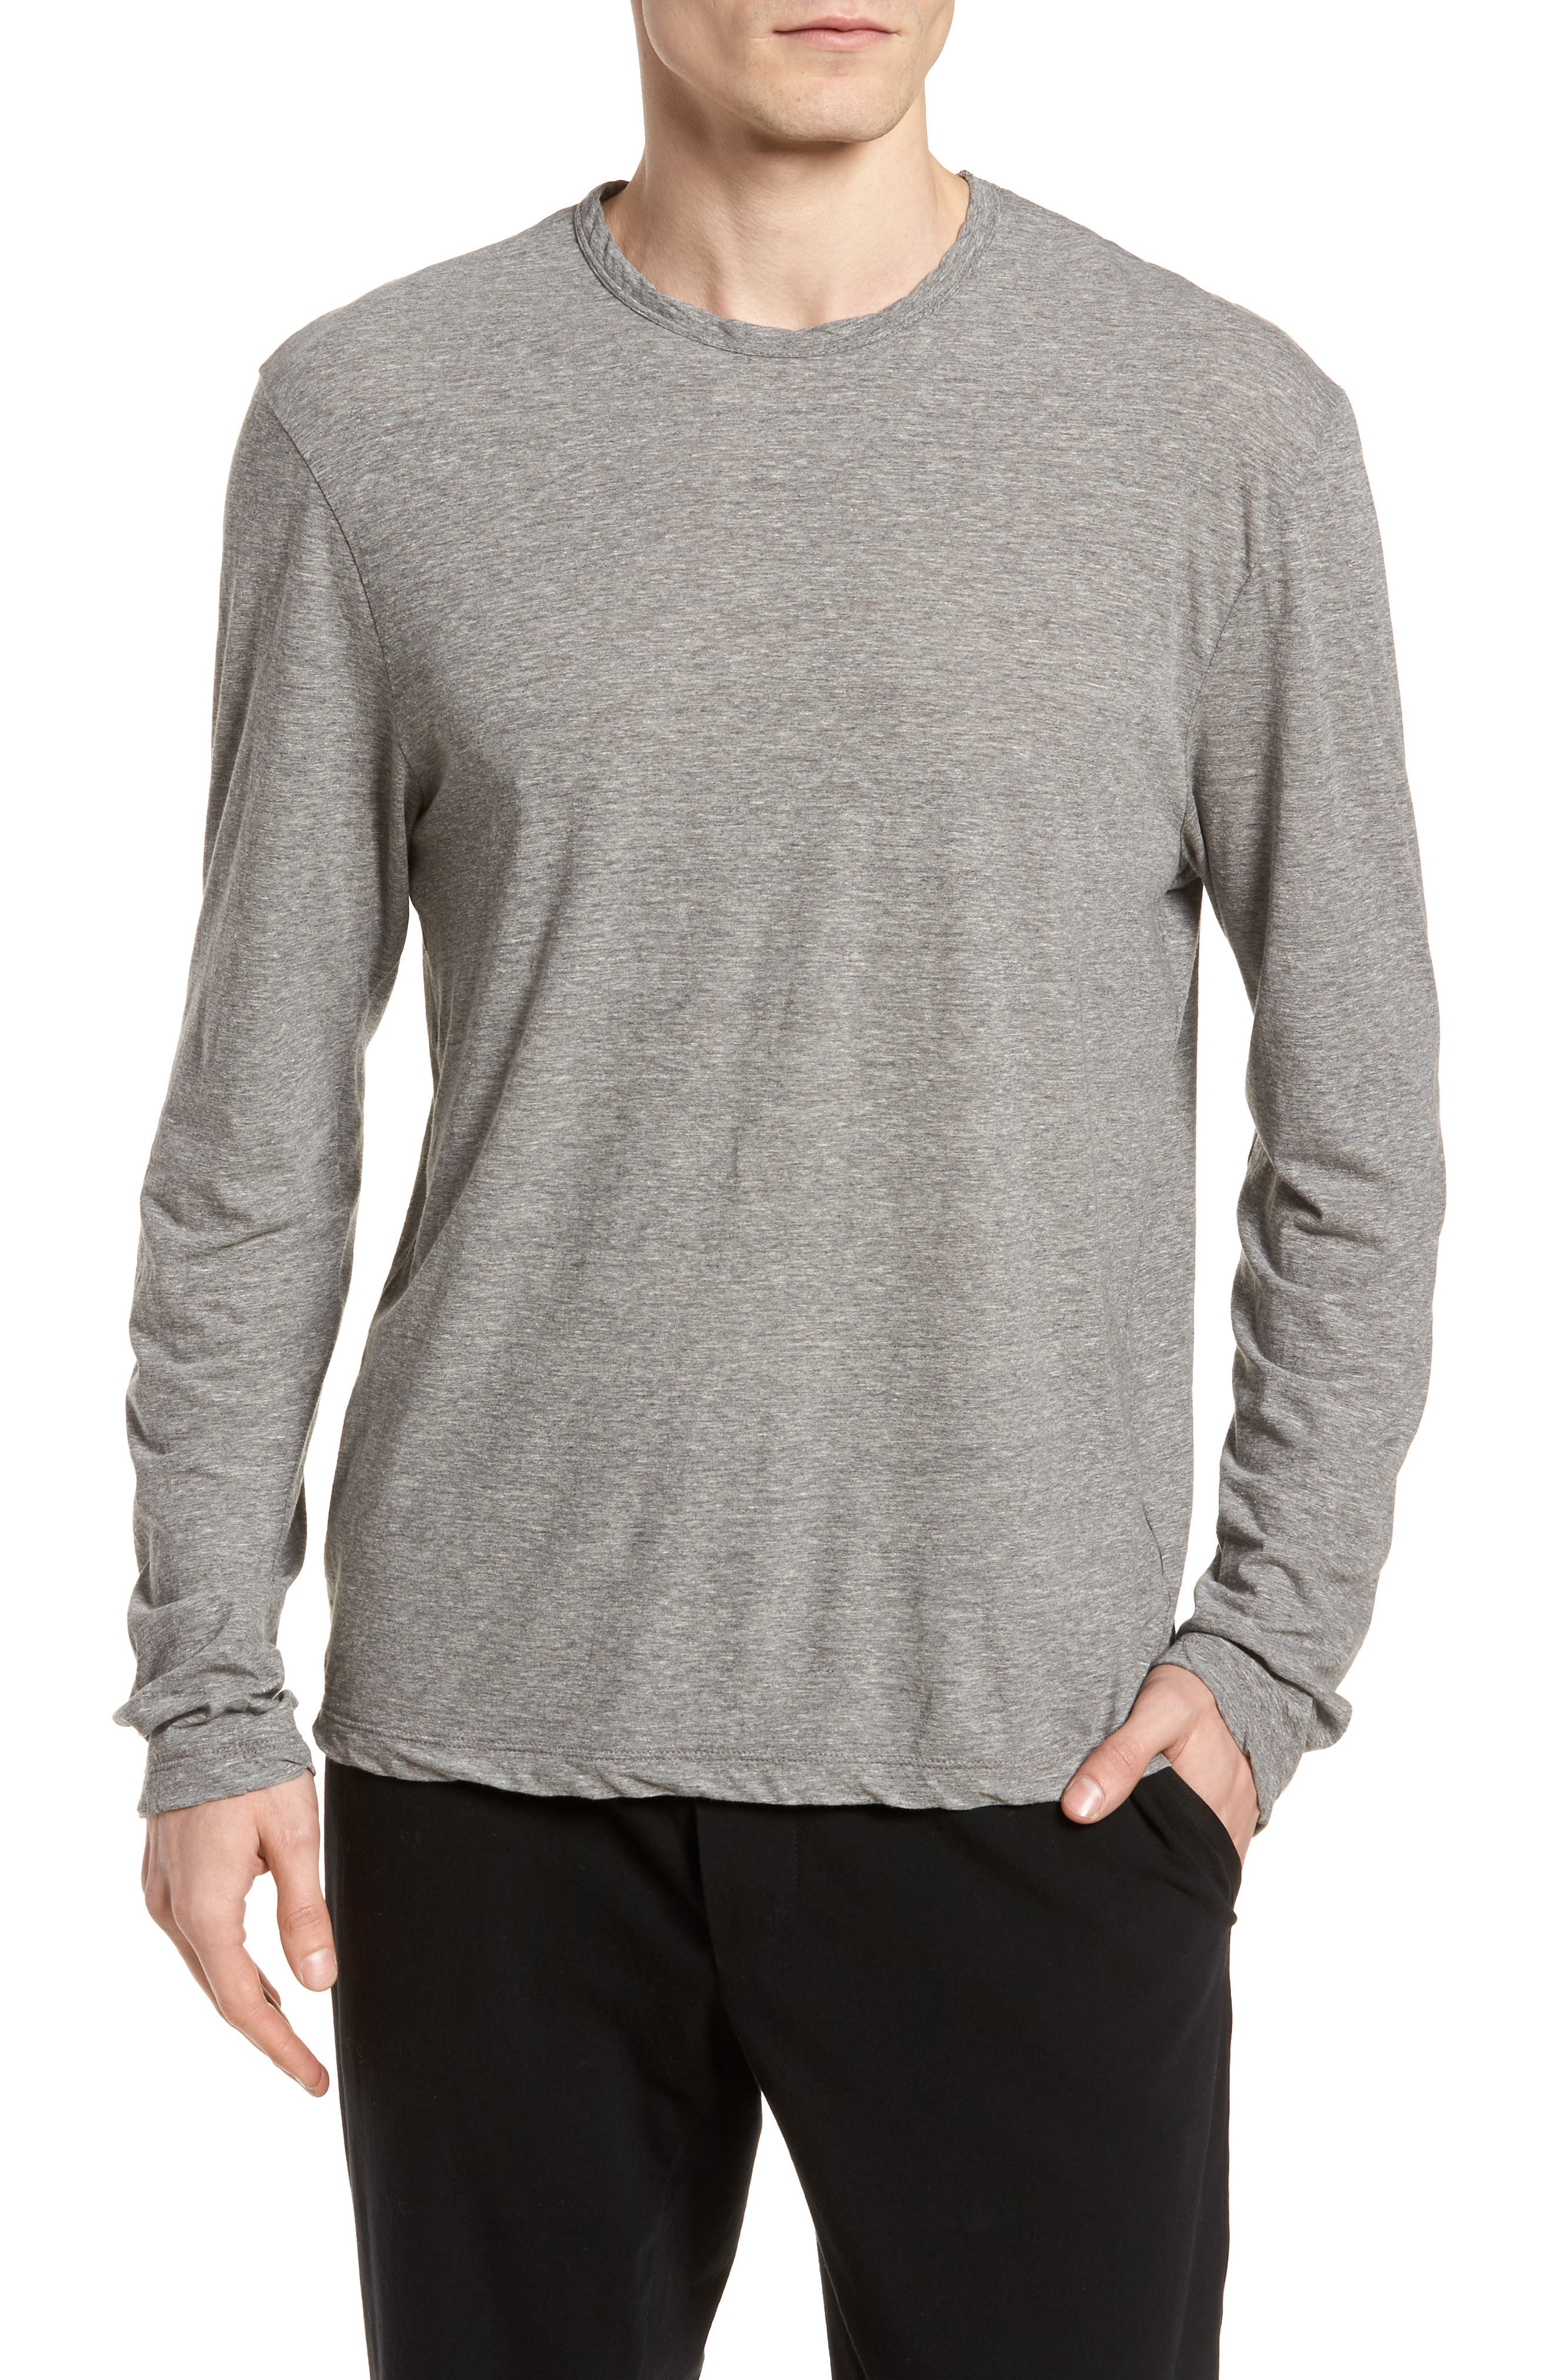 Jamers Perse High Twist Regular Fit Shirt,                         Main,                         color, Heather Grey